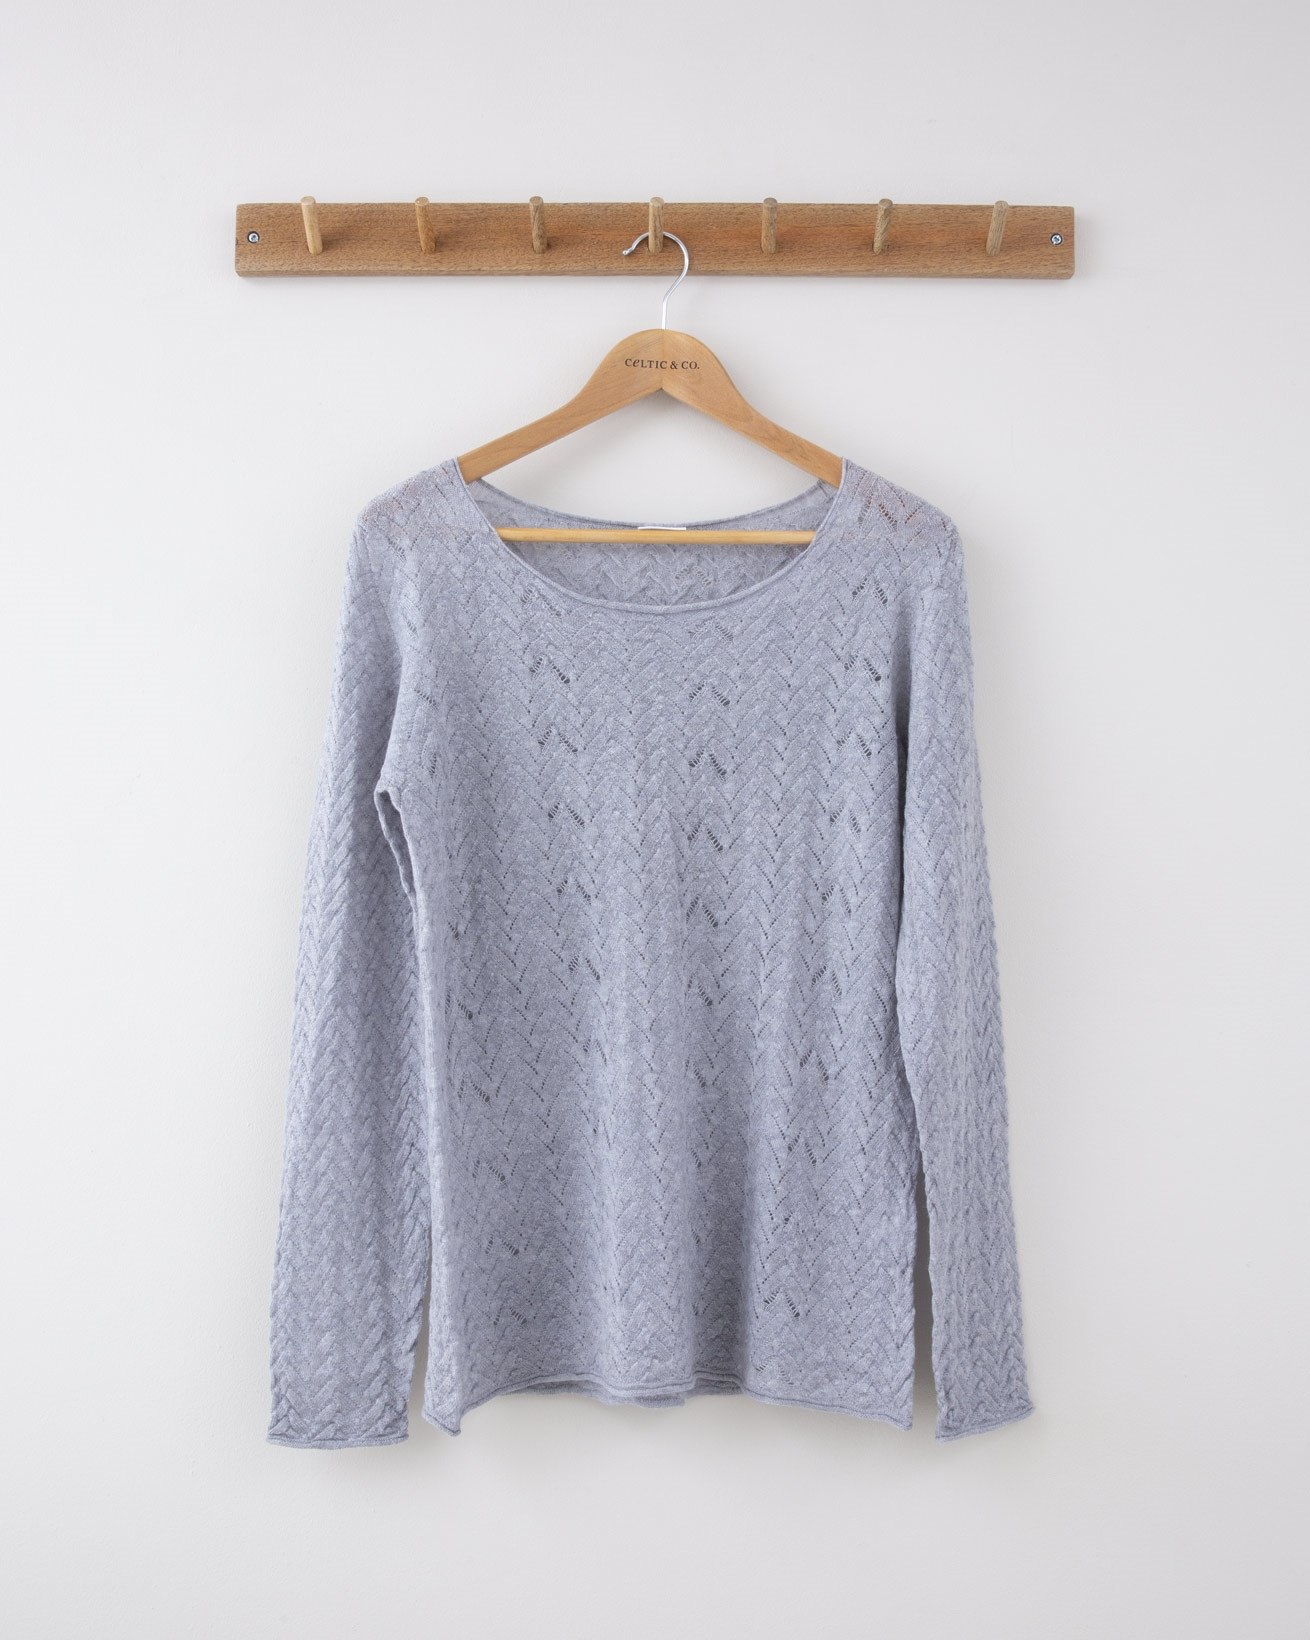 Fine Knit Lacey Cable Crew neck - Small - Silver Grey - 1270